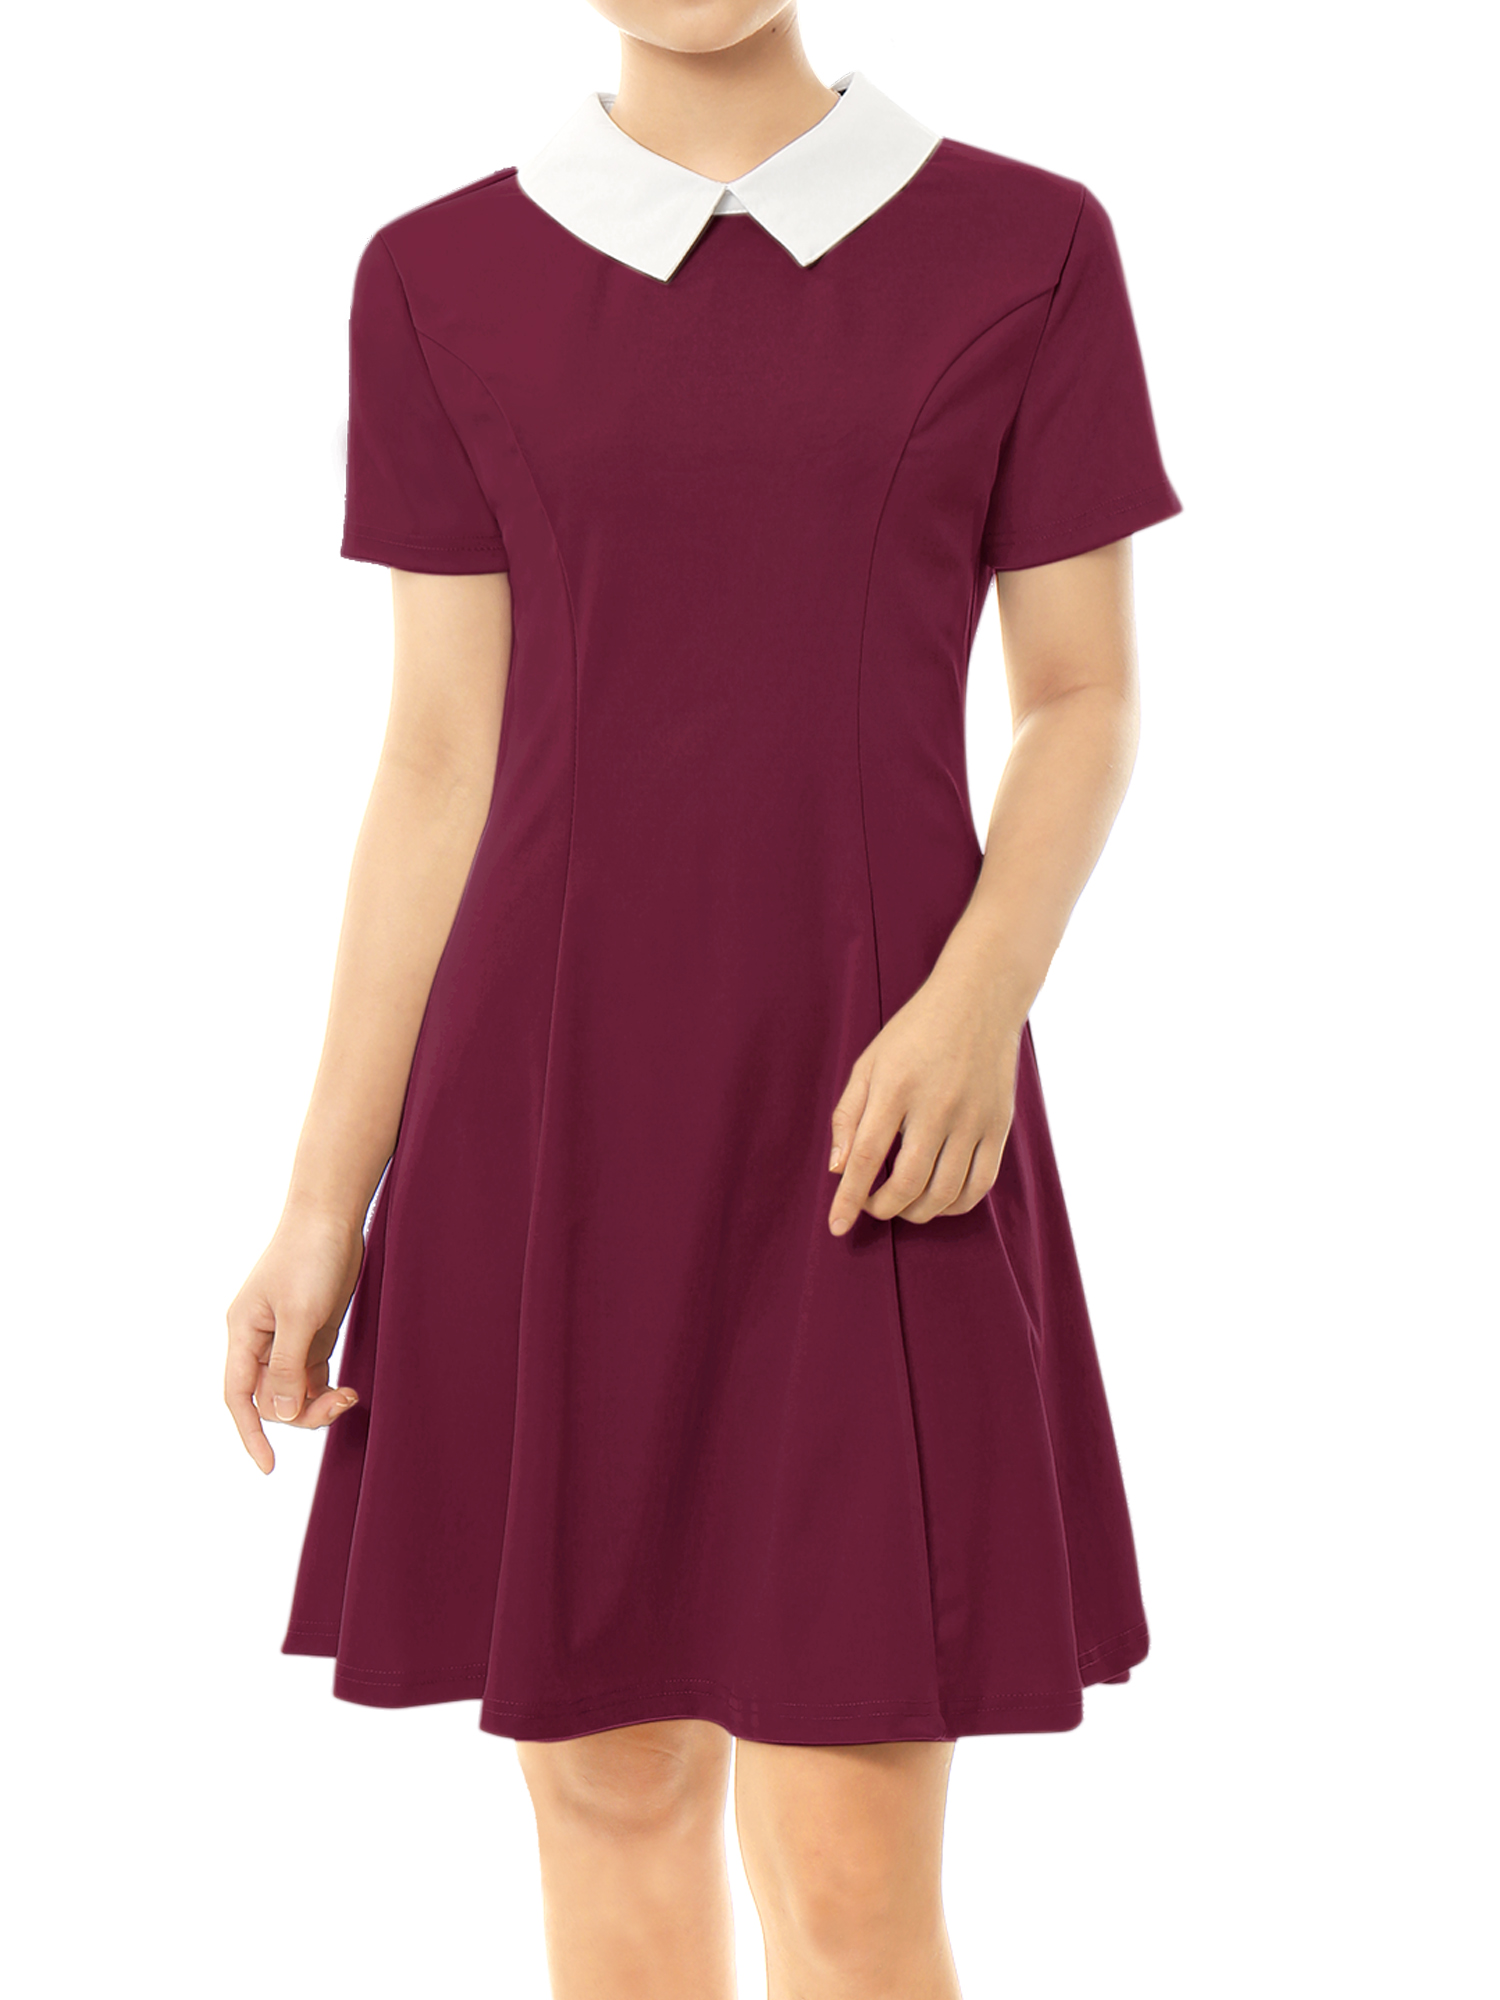 Women Doll Collar Short Sleeves Fit and Flare Dress Red S